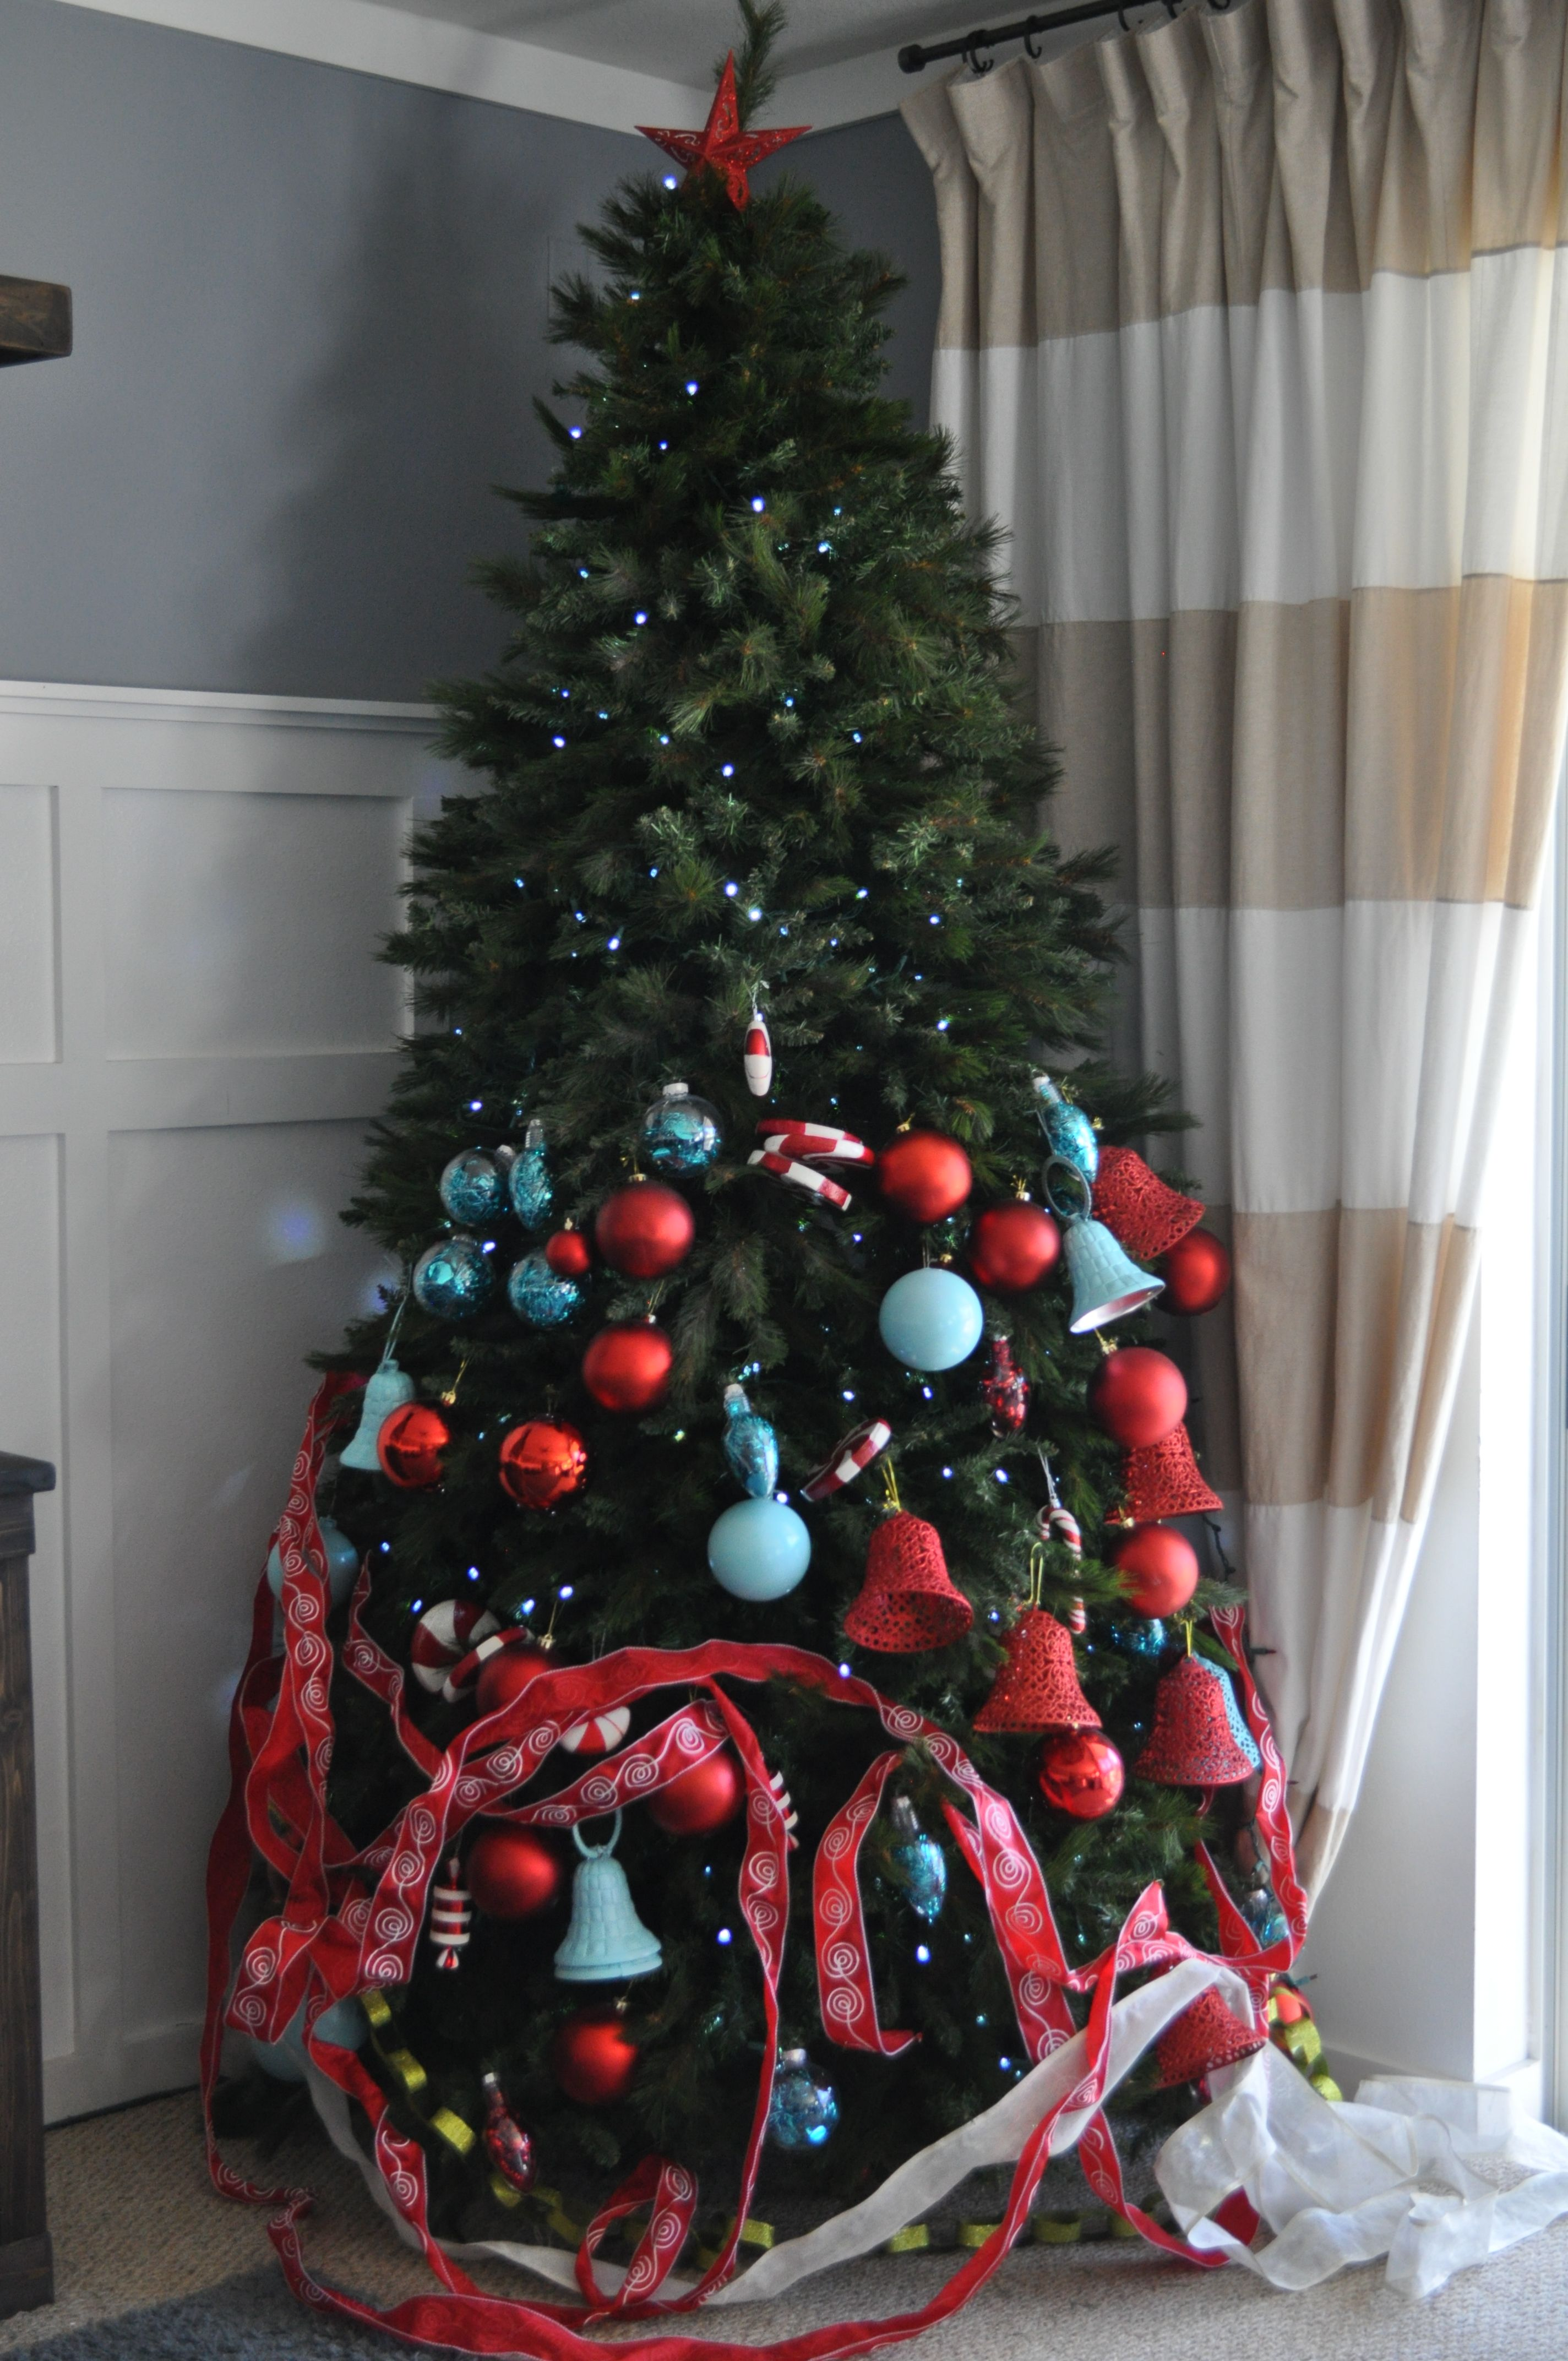 Professional Christmas Decorating Ideas.How To Decorate A Christmas Tree Like A Professional